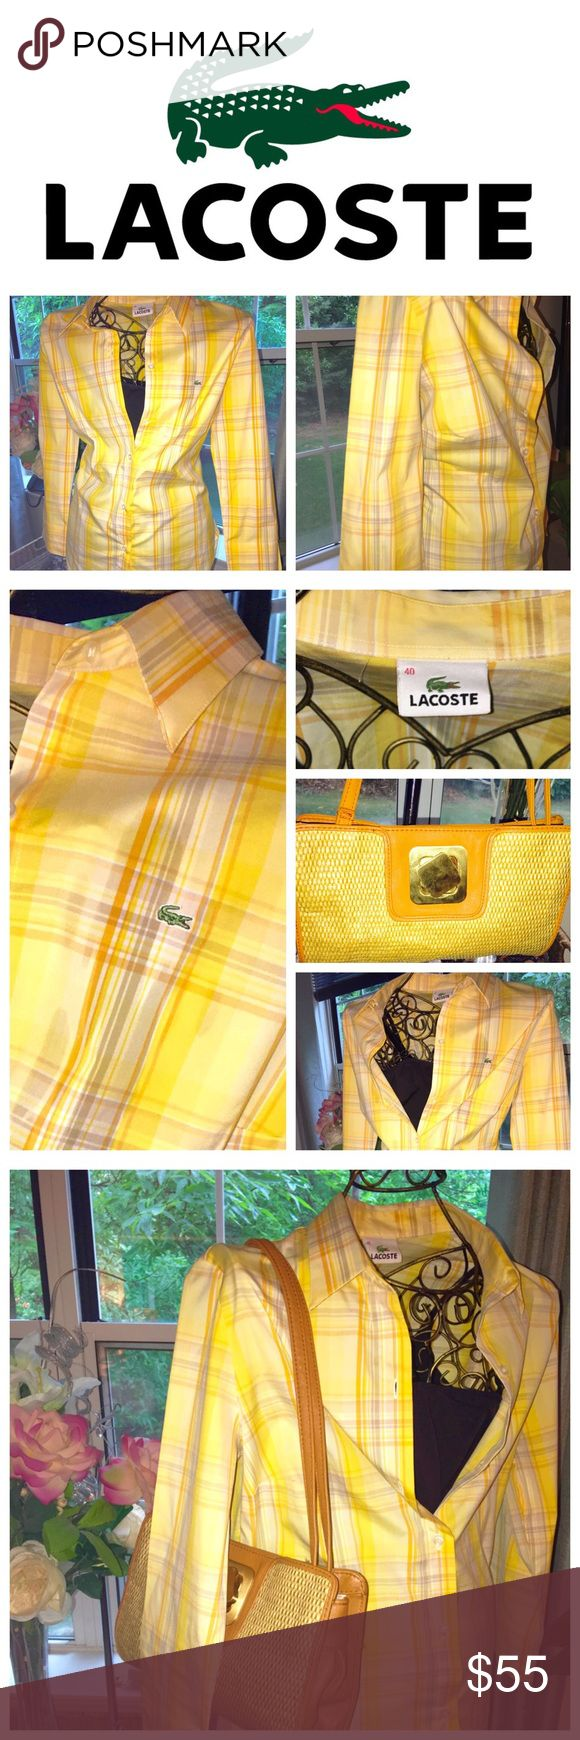 Ladies Lacoste Button Down Shirt w/ Mark Clutch Ladies, I am offering you these 2 new items. The Lacoste button down shirt is a European size 40 which is a 10 usa, however , Lacoste does run small. Great end of the summ we shirt into fall. It has never been worn. The MARK STRAW CLUTCH WITH GOLD TURNLOCK HARD WARE IS A GREAT COMPLIMENT. Use it with anything. Please ask questions . Lacoste Tops Button Down Shirts